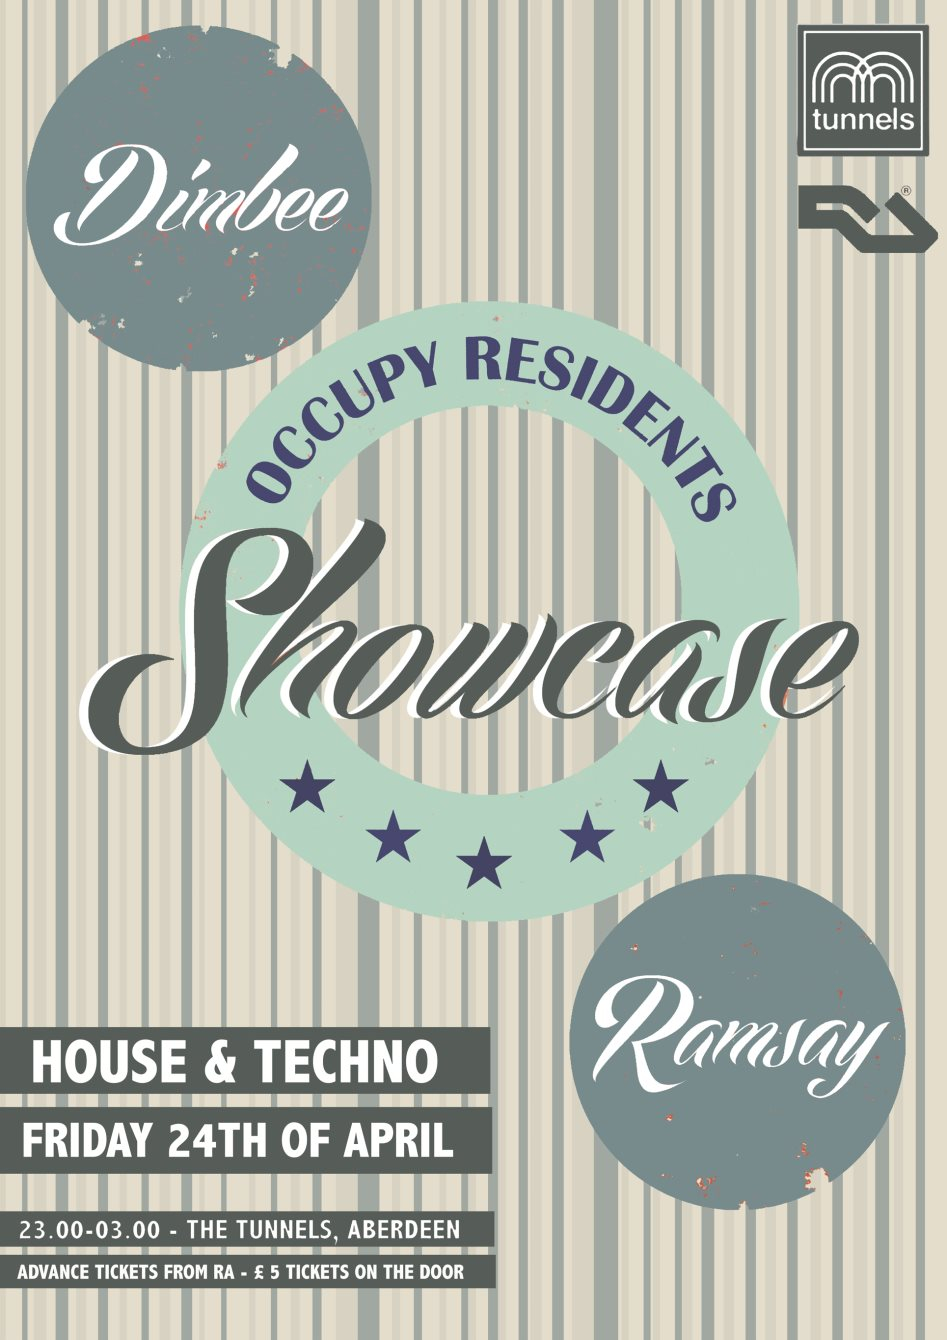 Occupy Residents Showcase: Dimbee & Ramsay - Flyer front